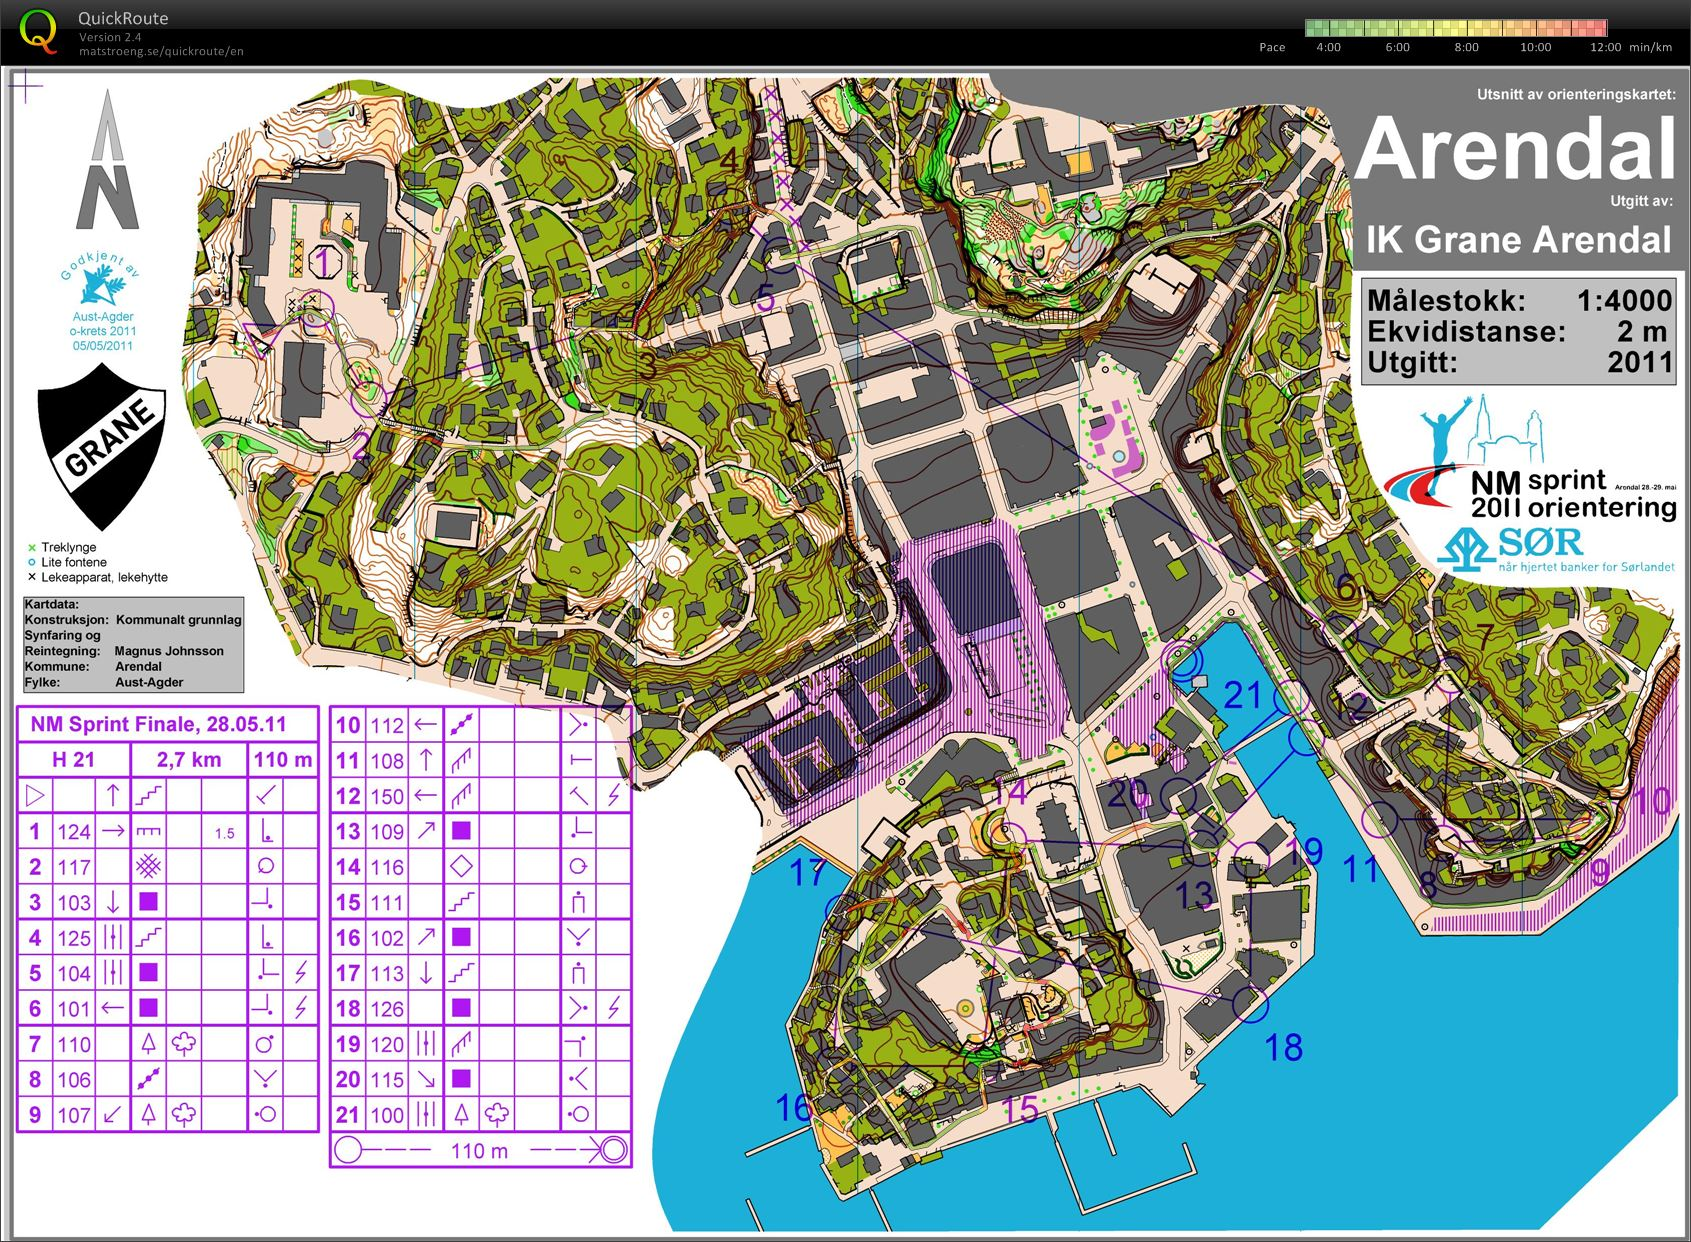 NM Sprint Arendal H21 course (09/07/2013)